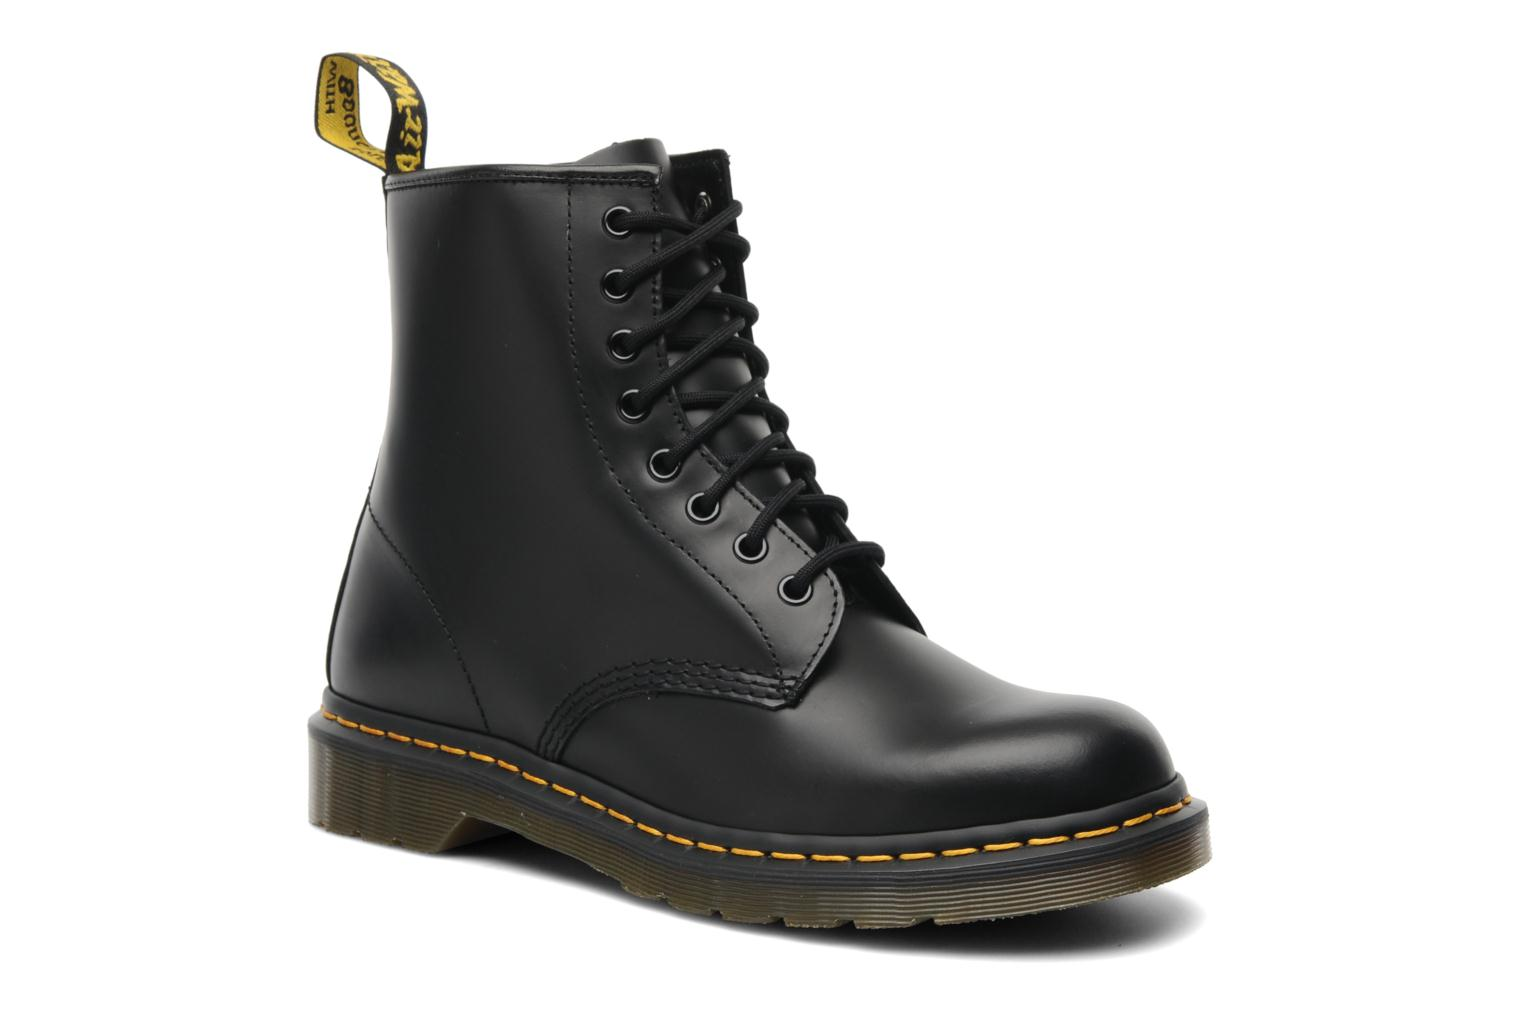 Van Fashion For Less 1460 Black Smooth Boots Prijsvergelijk nu!